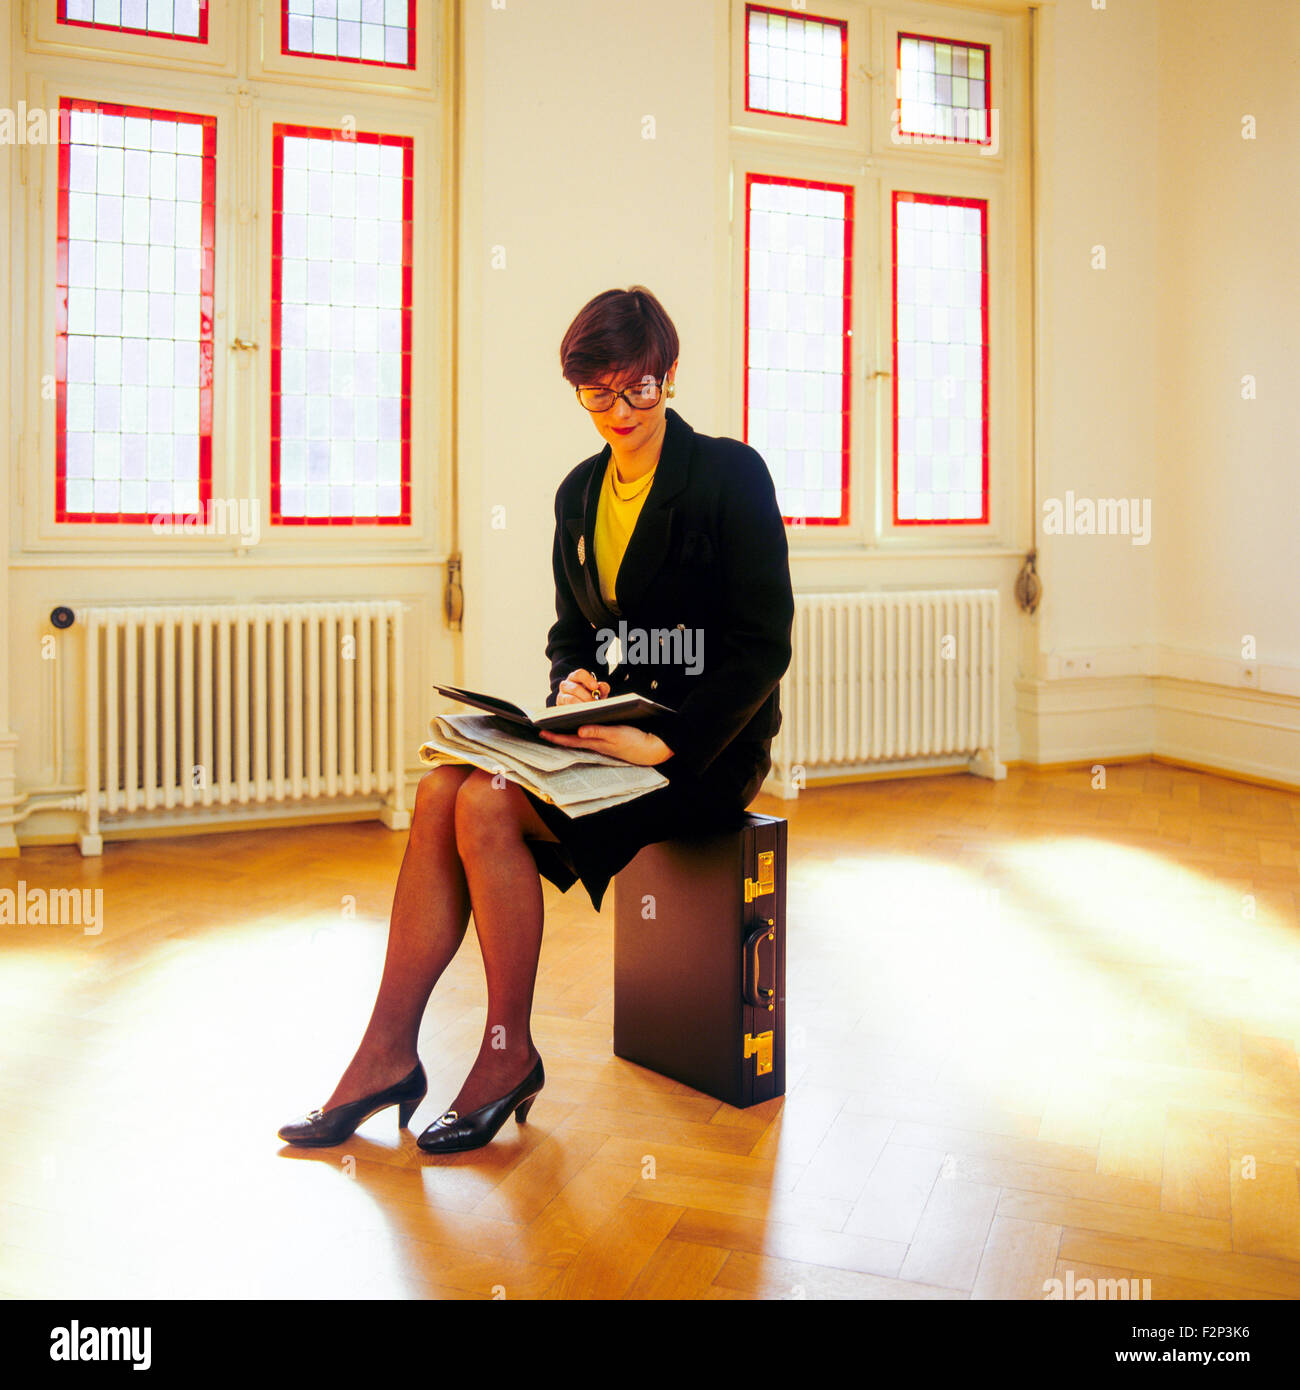 Real estate agent sitting on her briefcase in an empty room - Stock Image